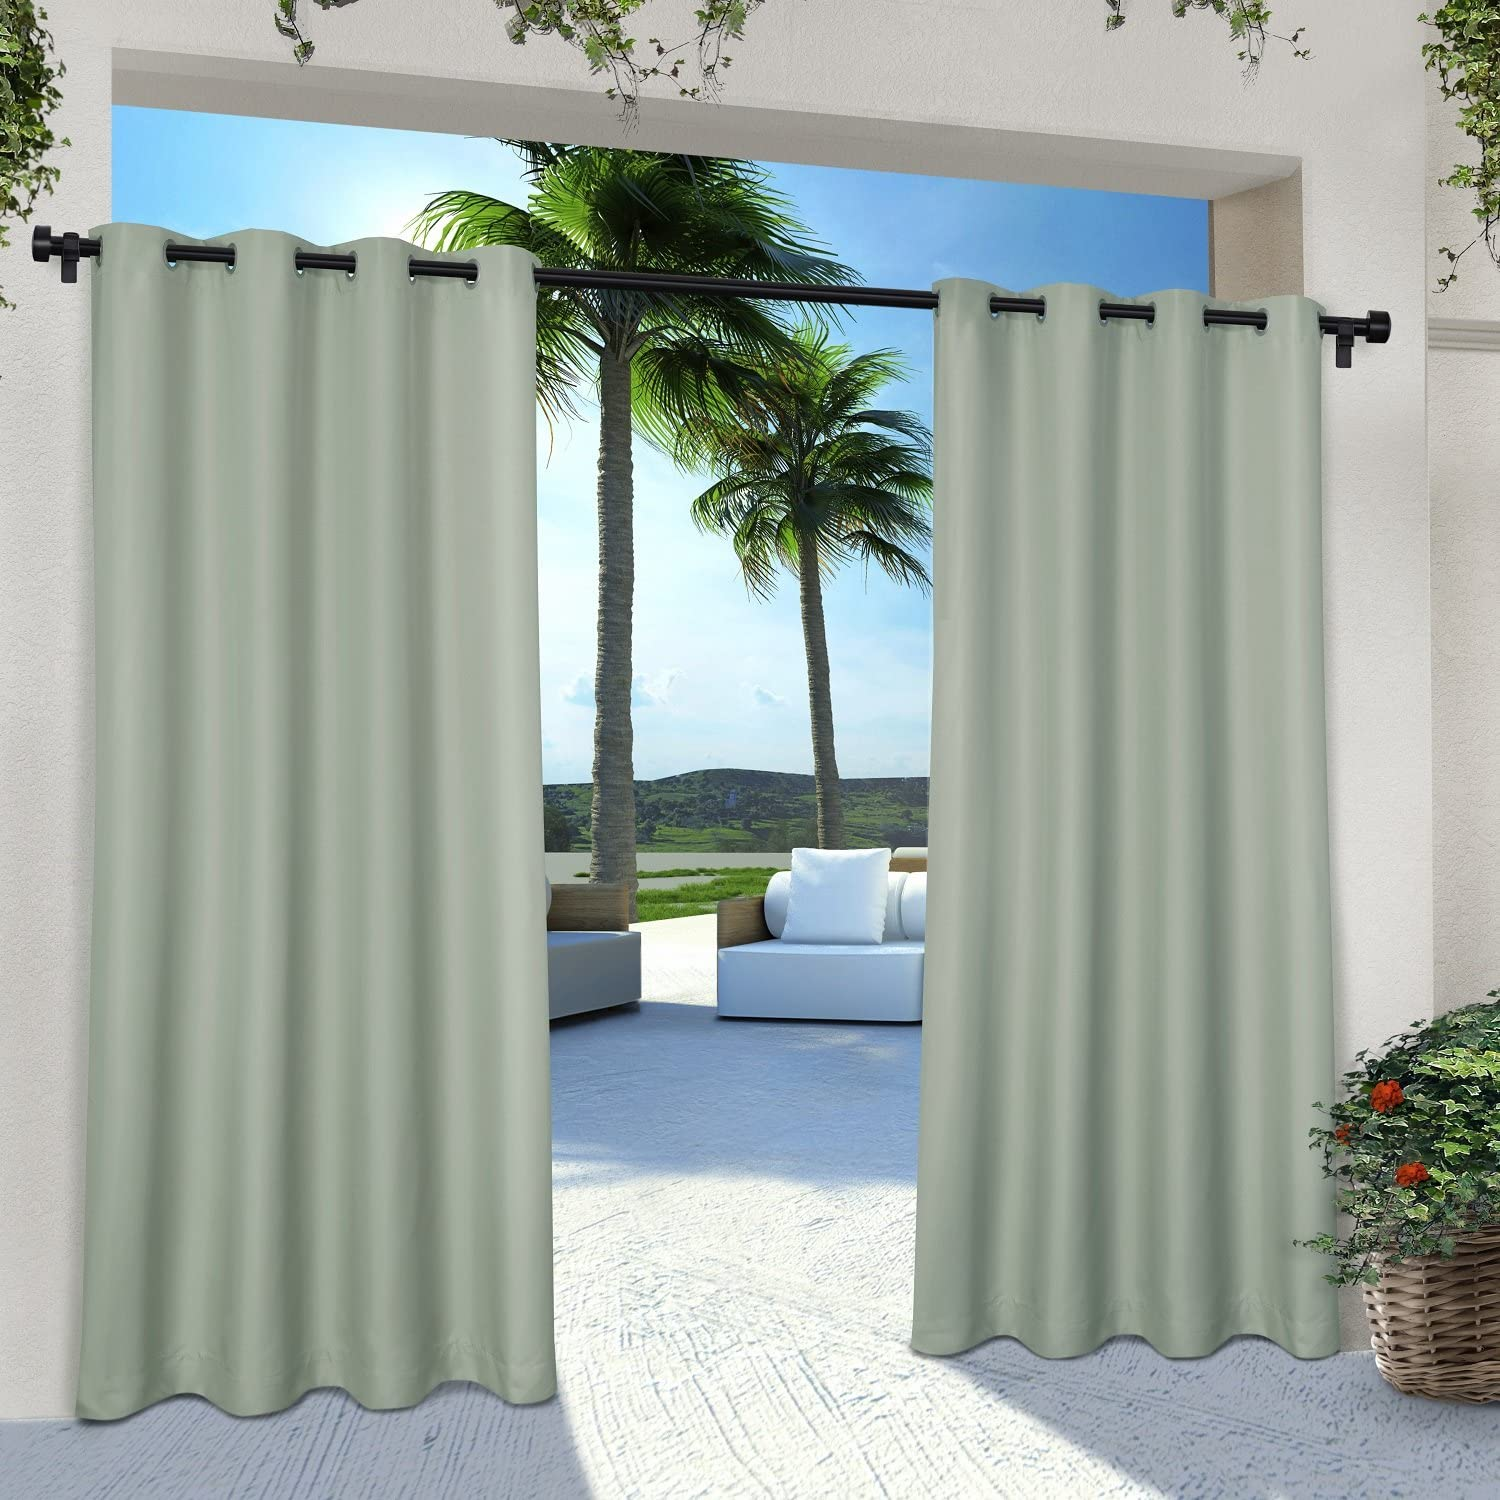 Exclusive Home Curtains Indoor/Outdoor Solid Cabana Grommet Top Curtain Panel Pair, 54x96, Seafoam, 2 Piece